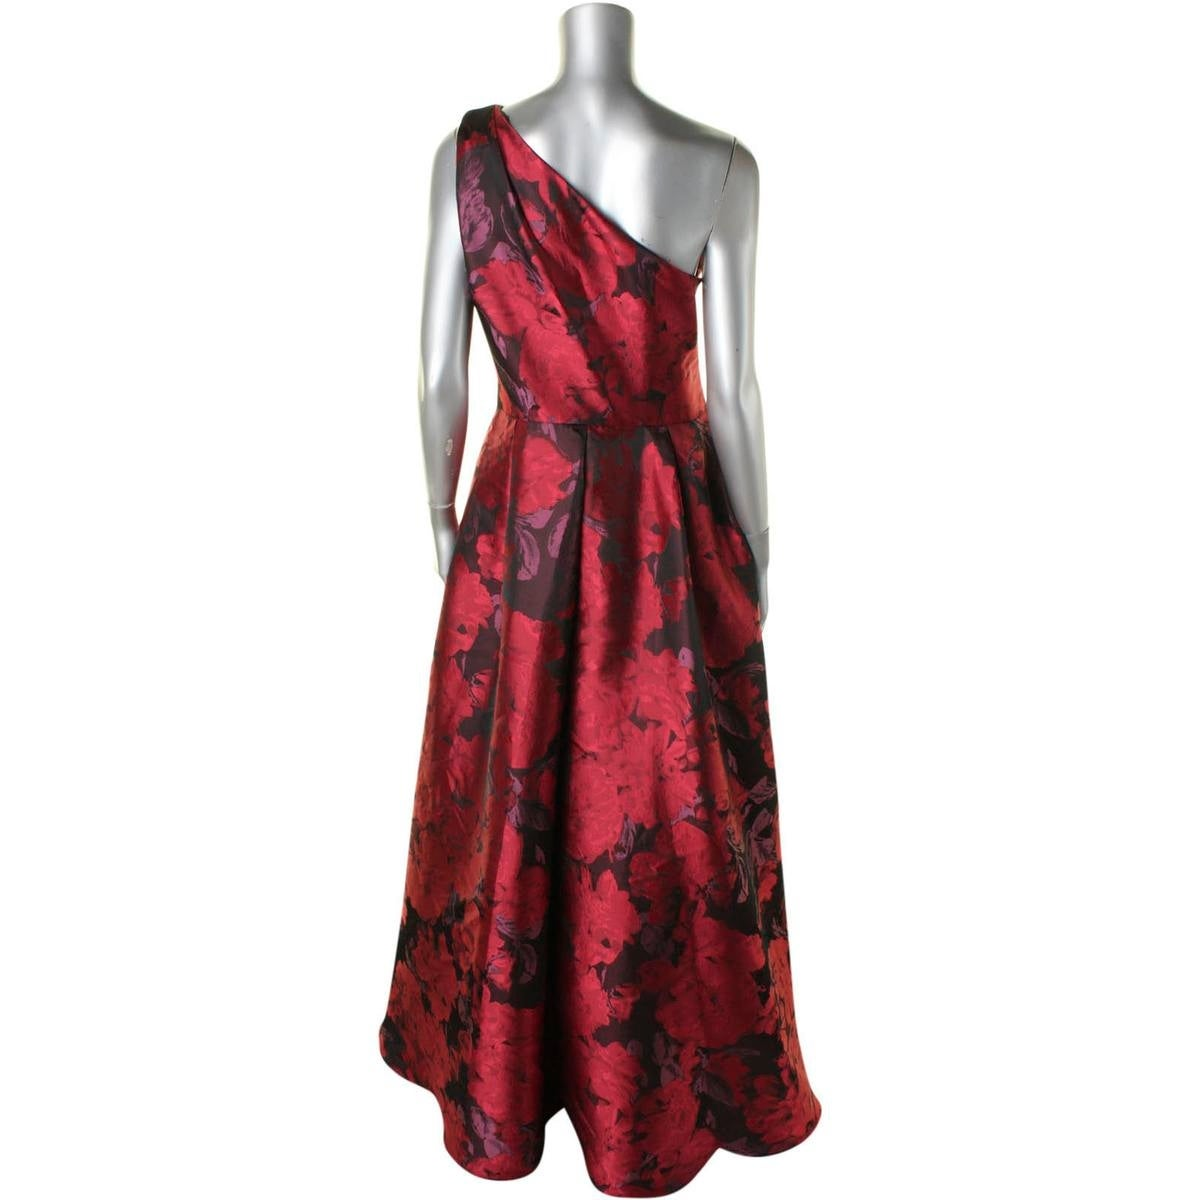 dbfdce13b6 Shop Carmen Marc Valvo Womens Evening Dress One Shoulder Floral - Free  Shipping Today - Overstock - 19852461